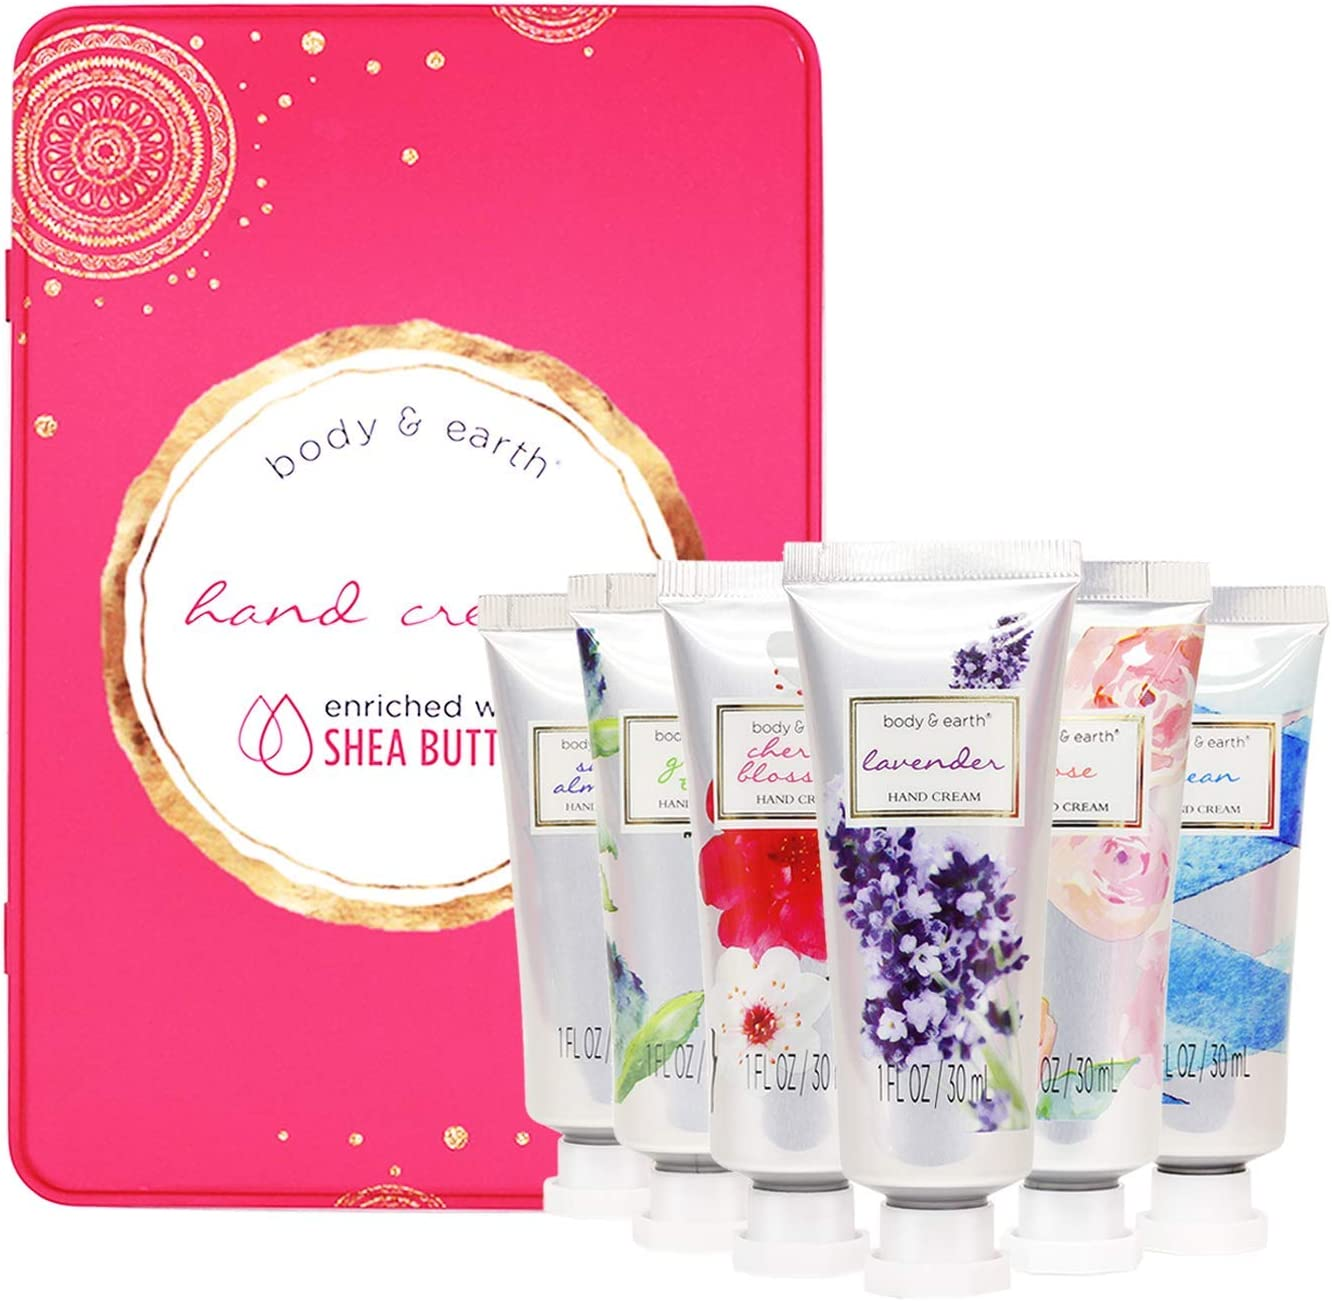 Hand Cream Gift Set, BODY and EARTH Hand Lotion for Dry